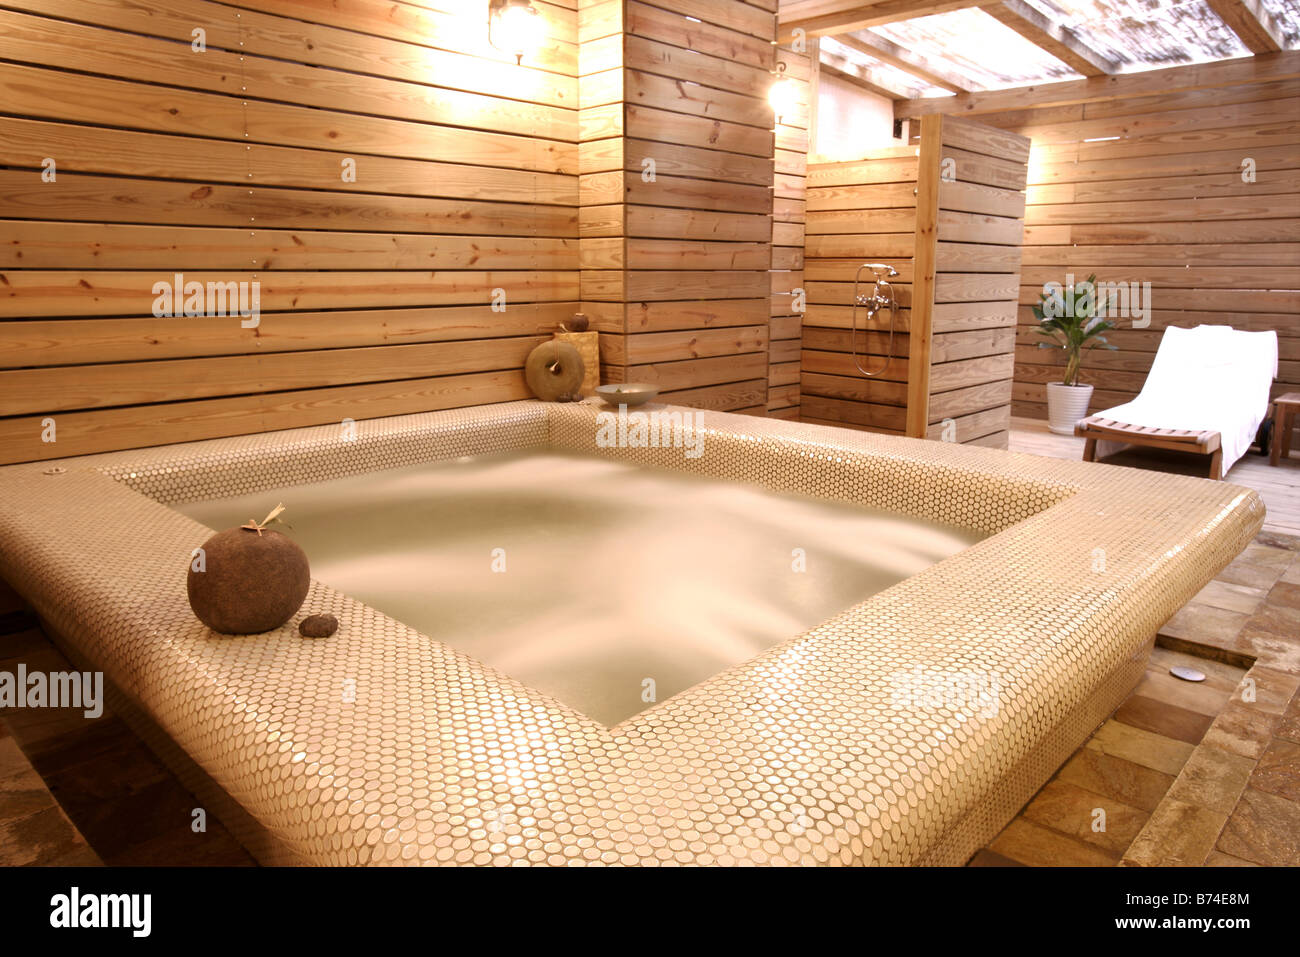 Spa Tub Couch Stock Photos & Spa Tub Couch Stock Images - Alamy